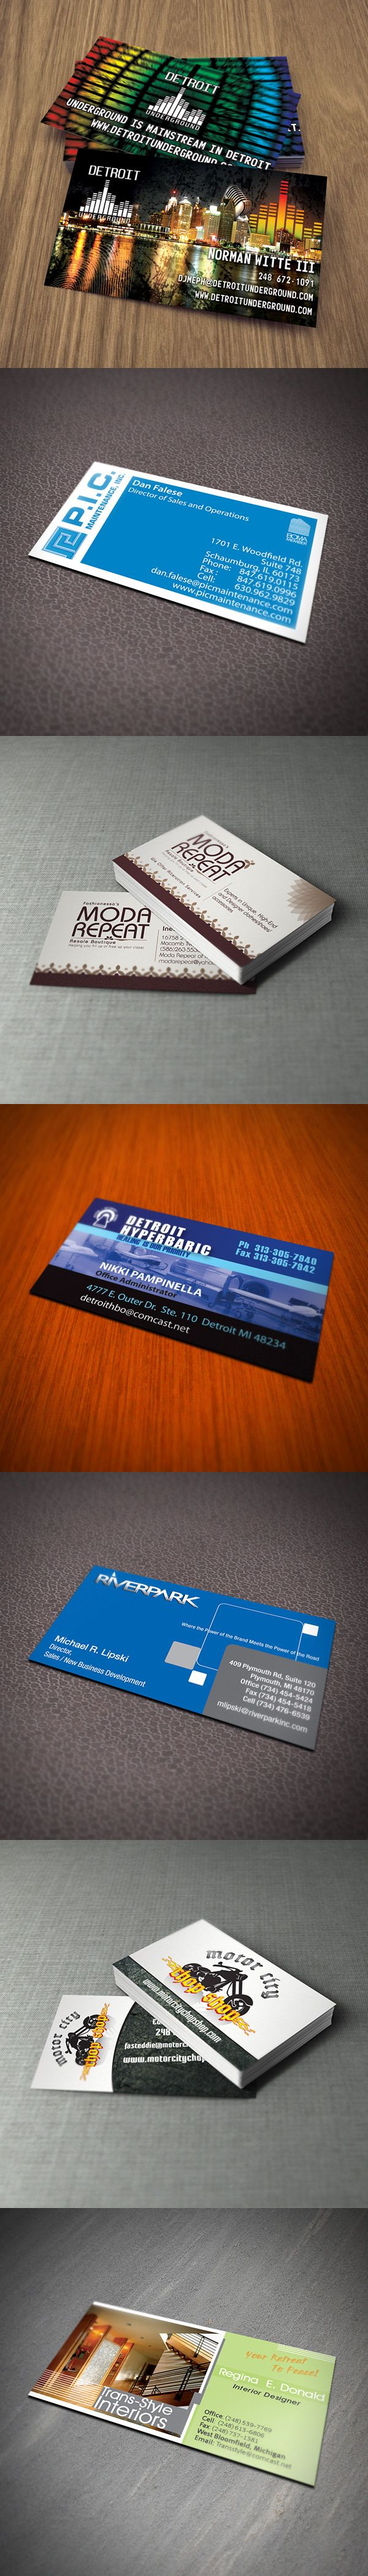 100 best Business Cards Business Card printing images on